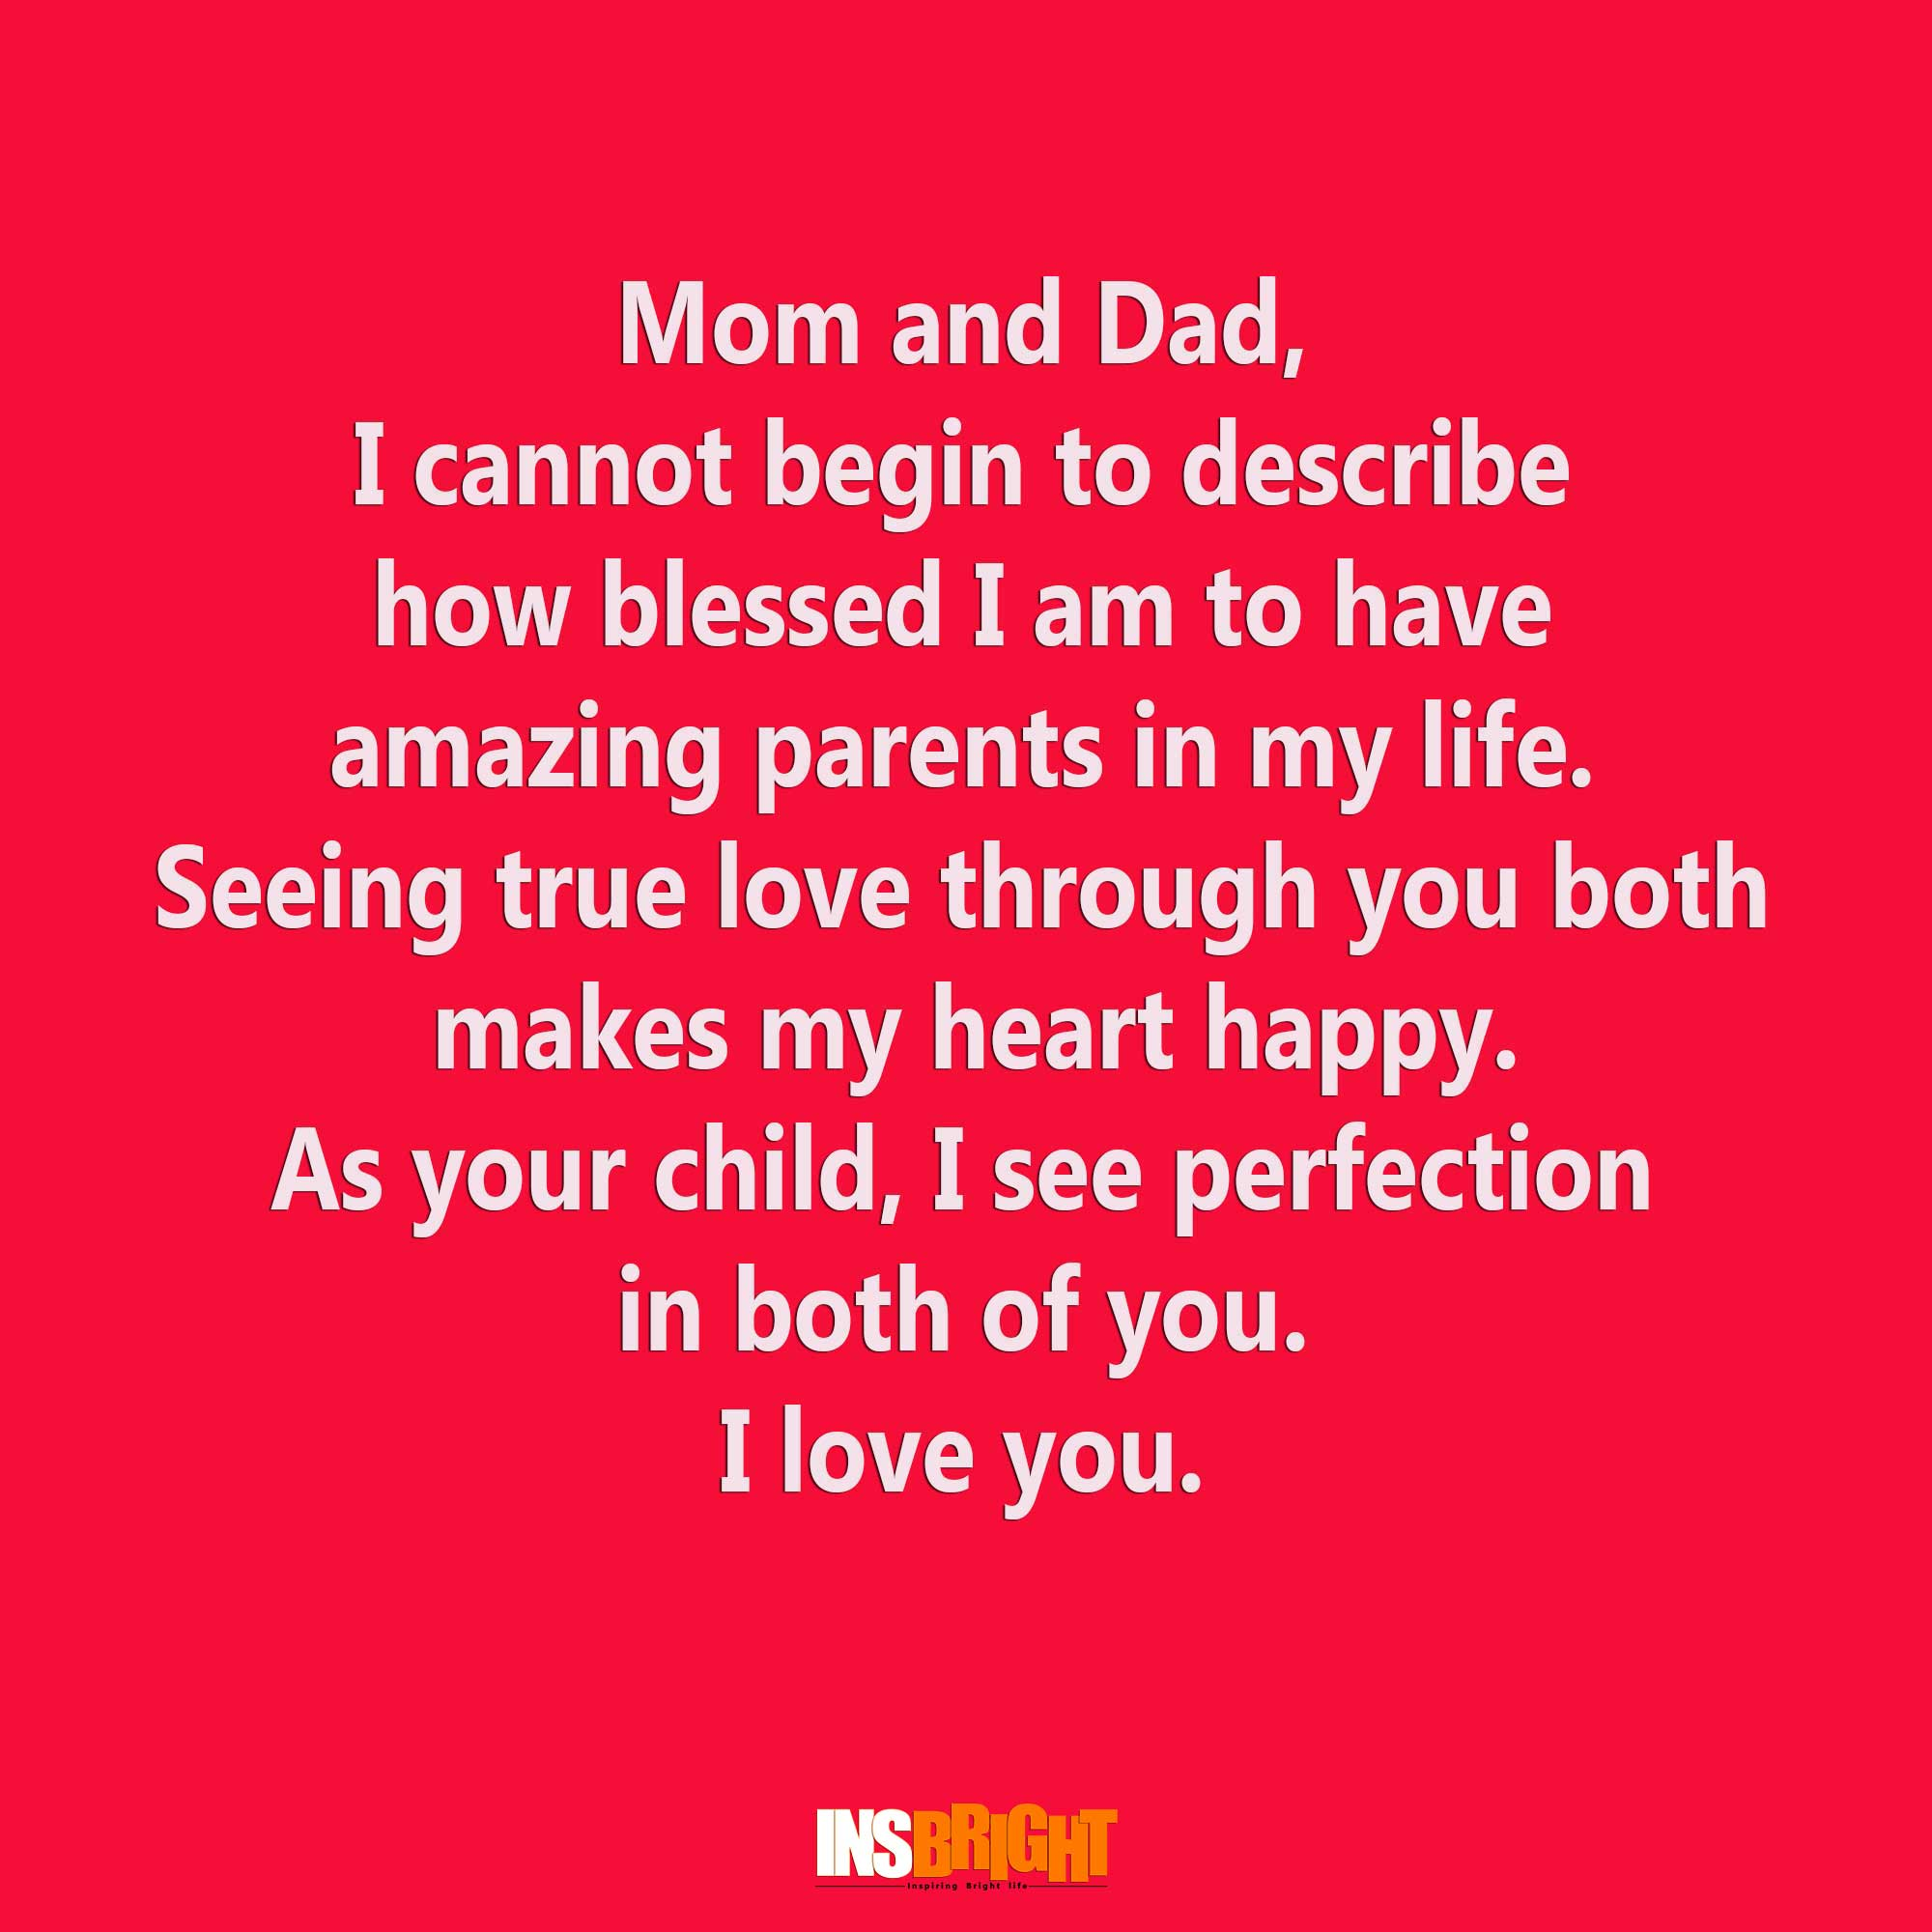 Quotes for wedding anniversary of mom and dad